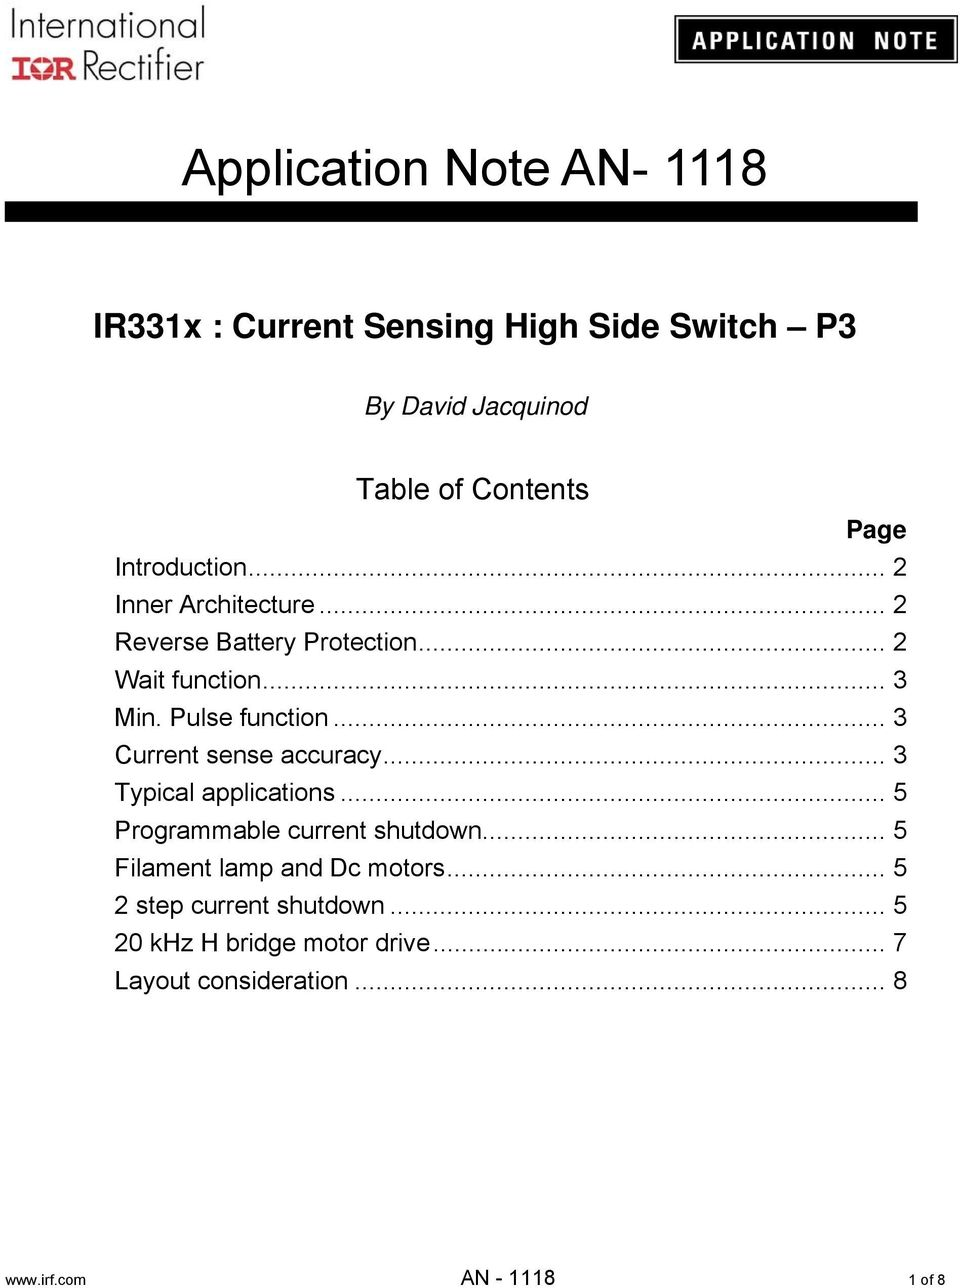 Application Note An Pdf Synchronous Rectifier For Reverse Battery Protection Schematic Transcription